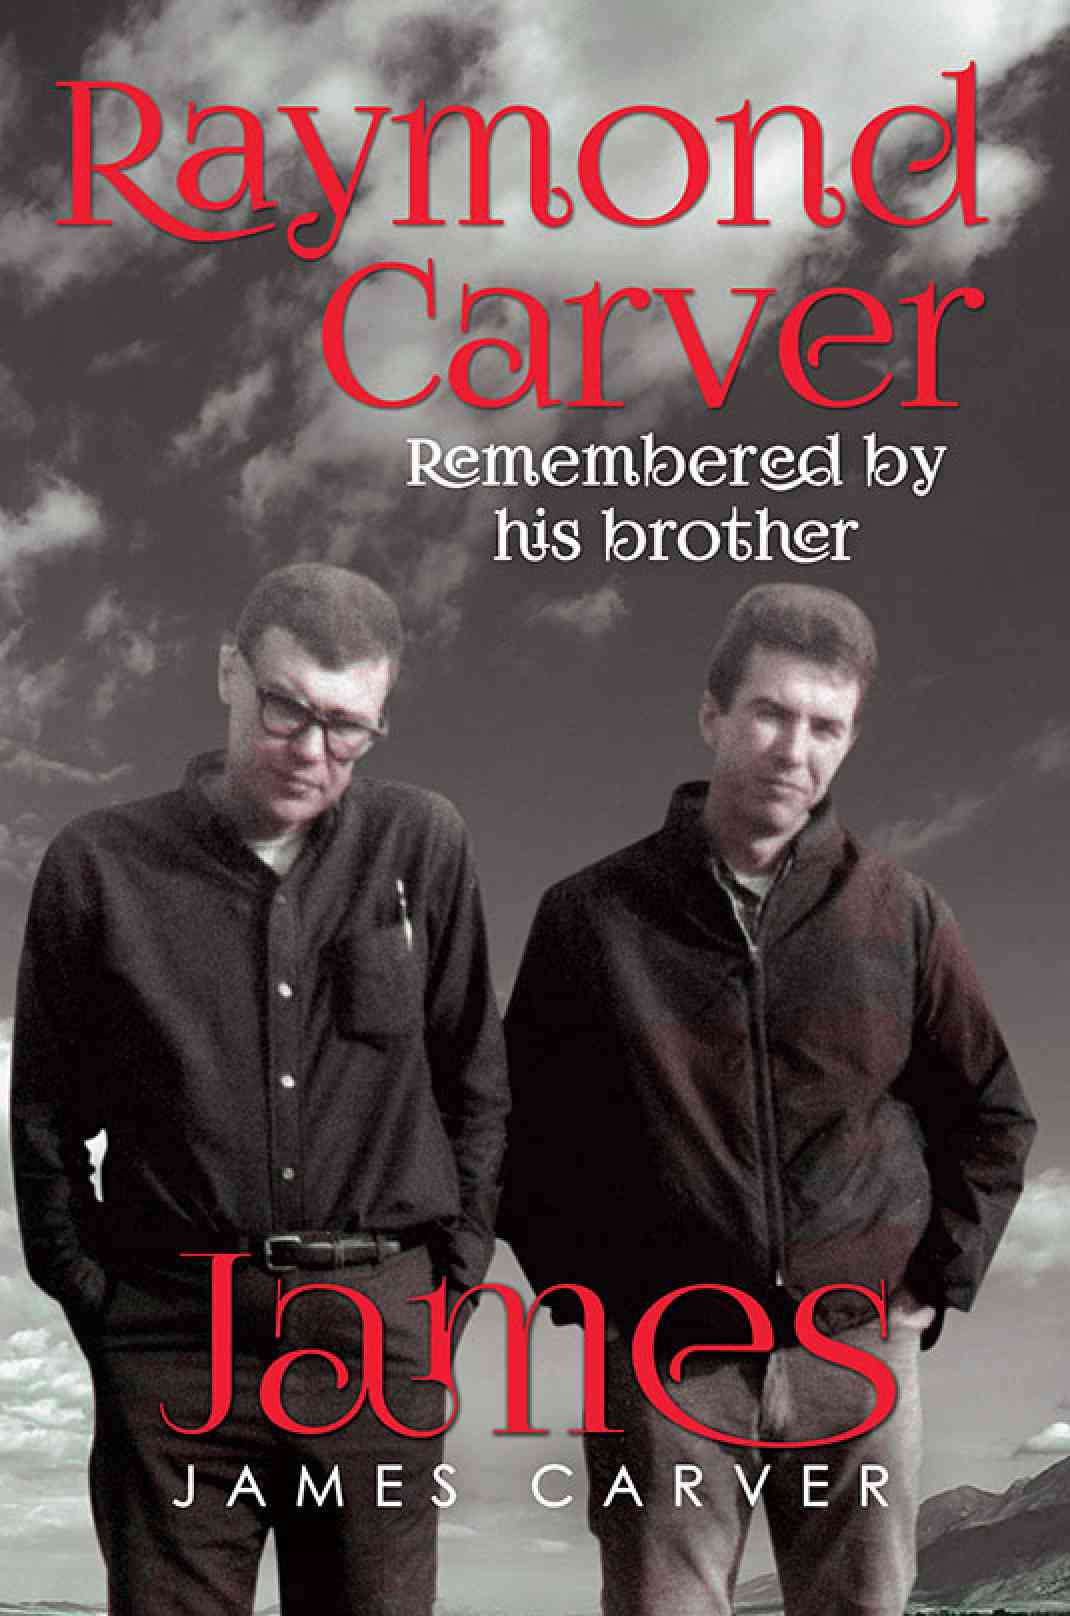 Raymond Carver Remembered by his brother James